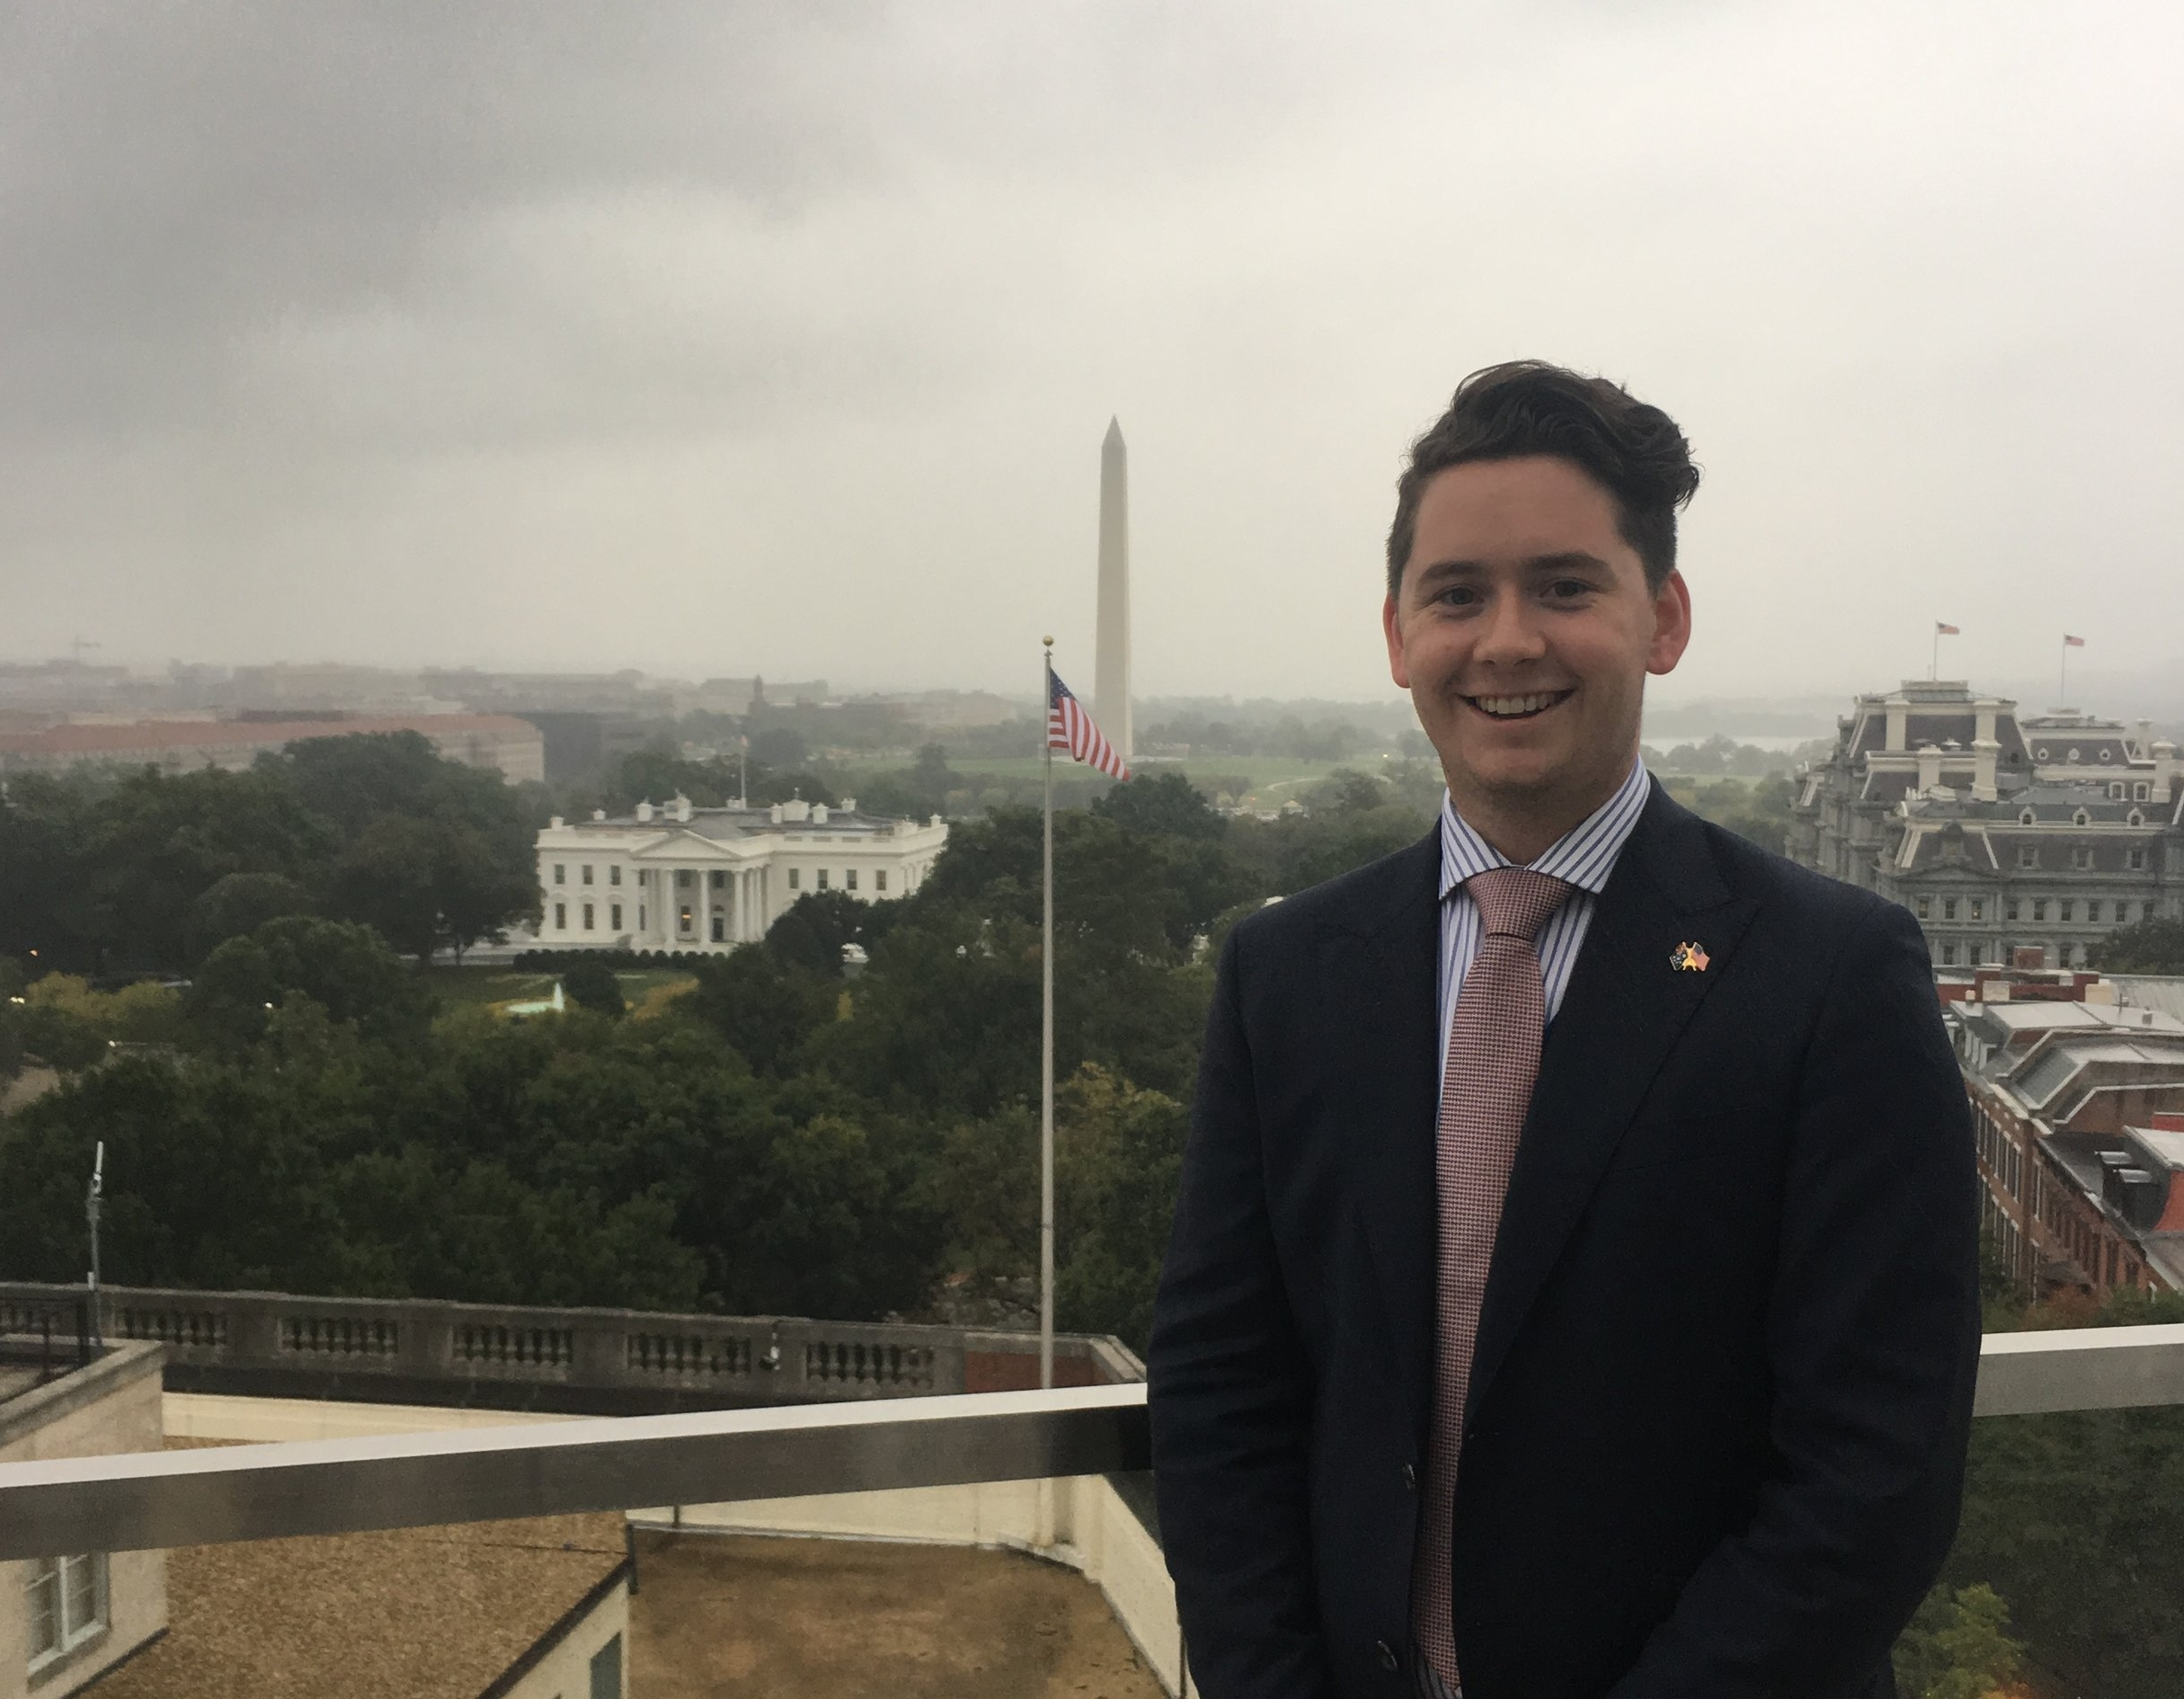 Arlen poses for a photo on the Baker-McKenzie rooftop overlooking the White House and the Washington Monument.